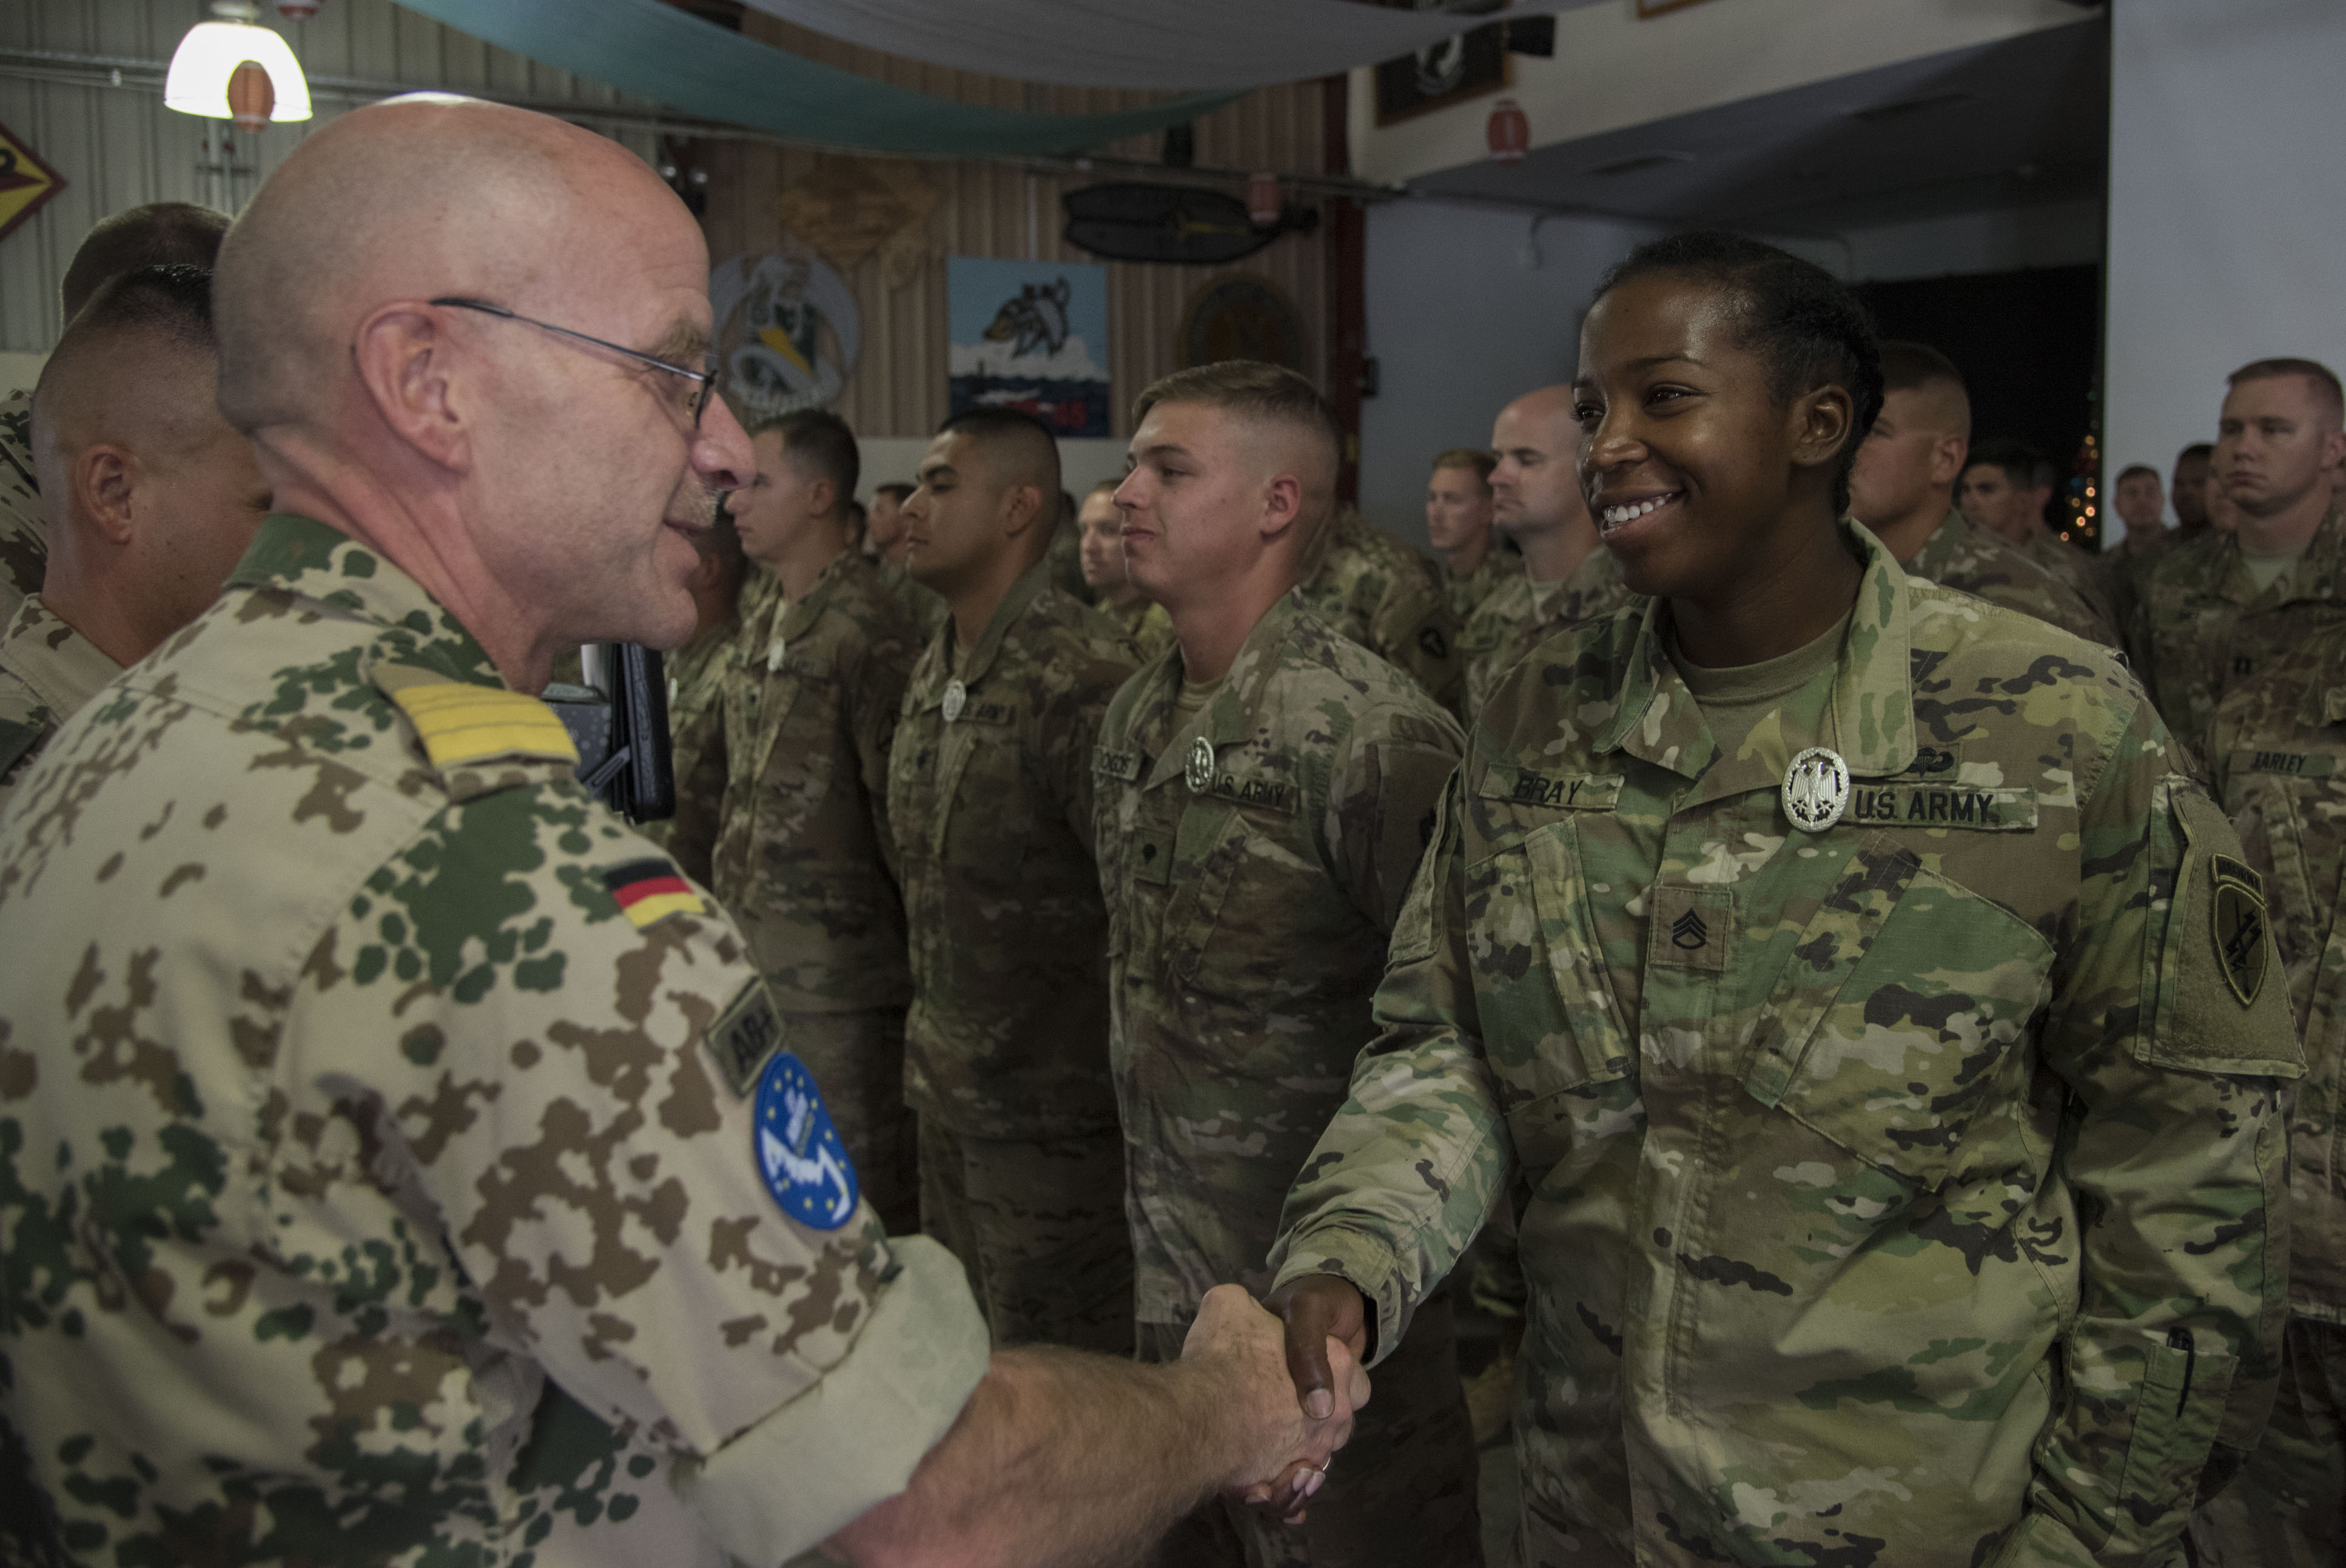 U.S. Army Staff Sgt. Sierra Bray, 346th Tactical Psychological Operations Company (Airborne), U.S. Army Reserve, Columbus, Ohio, deployed with Combined Joint Task Force-Horn of Africa, shakes hands with German commander Axel Schilling as she is awarded the German Armed Forces Proficiency Badge (GAFPB), a decoration of the Armed Forces of the Federal Republic of Germany, at Camp Lemonnier, Djibouti, Dec. 8, 2017. Competitors completed a physical fitness test, uniformed swim, weapons qualification, ruck march, first aid course and chemical warfare course to be awarded the GAFPB, one of the few foreign allied military awards that U.S. service members are authorized to wear. (U.S. Air National Guard photo by Staff Sgt. Allyson L. Manners)